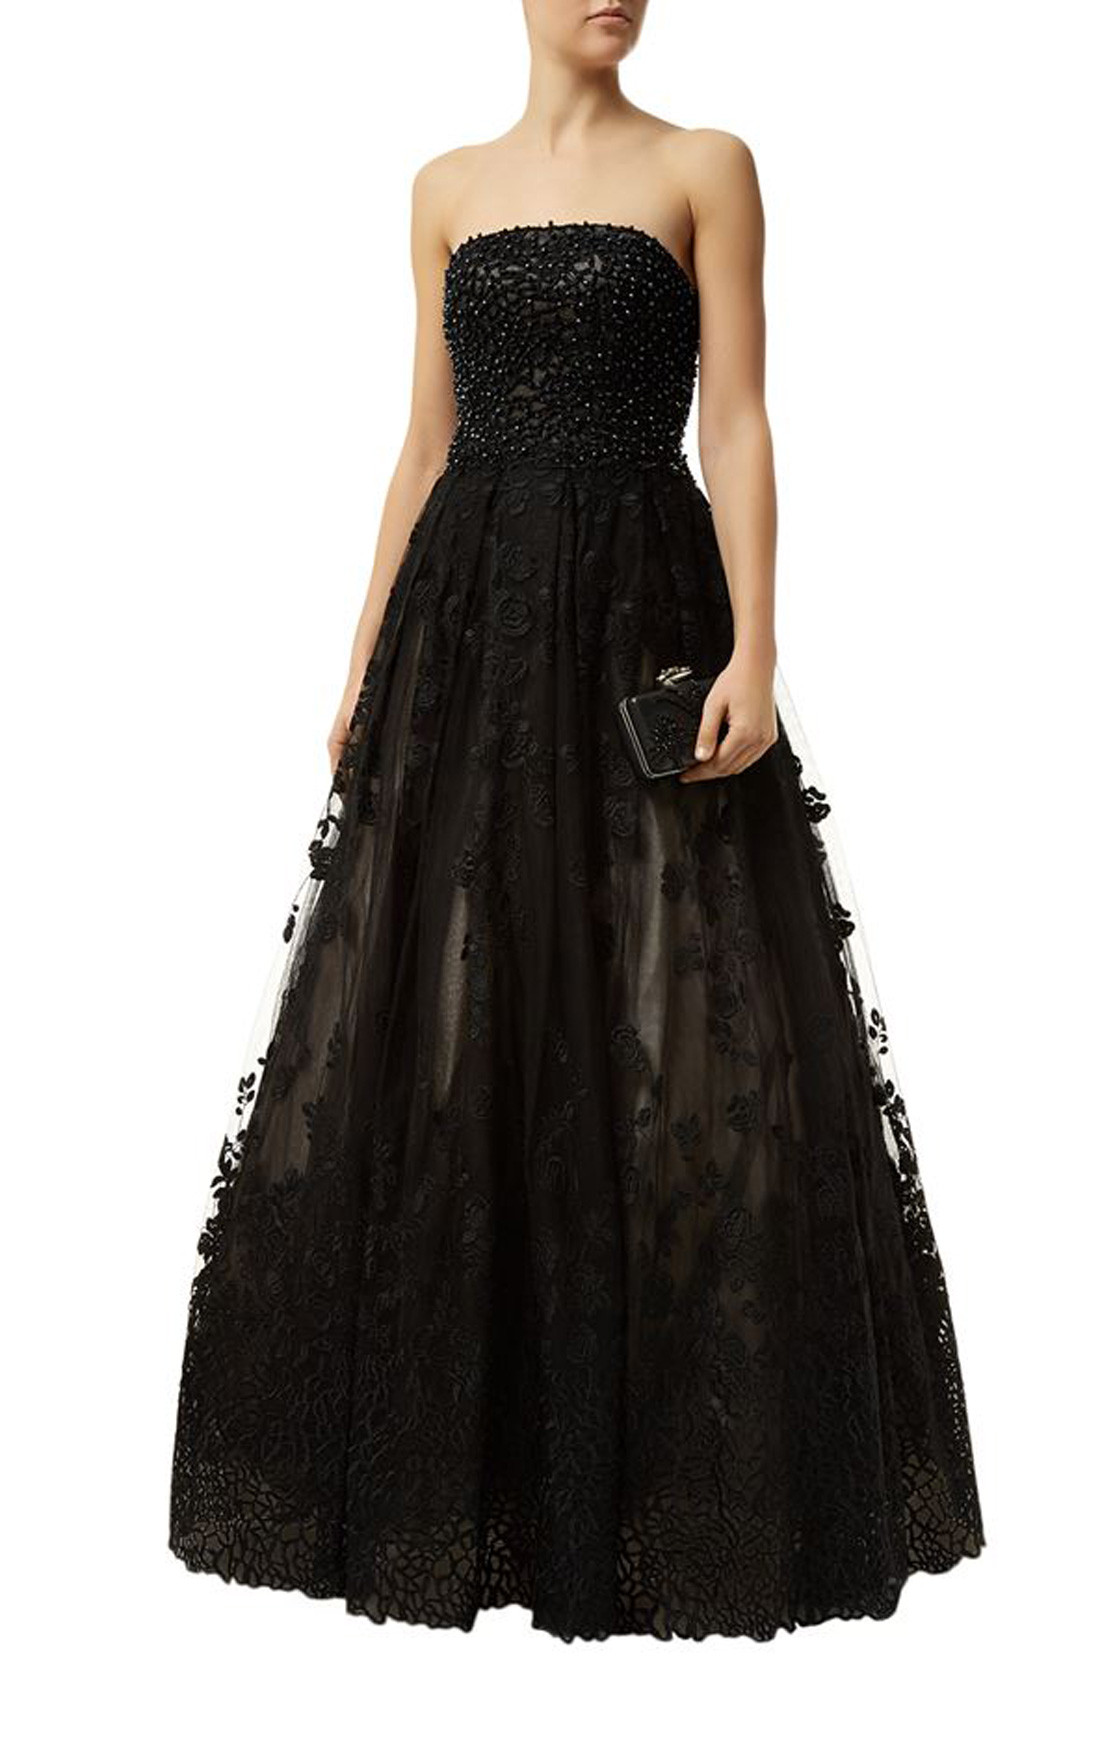 Jovani - Black Strapless Applique Dress with Embellishments (50290)